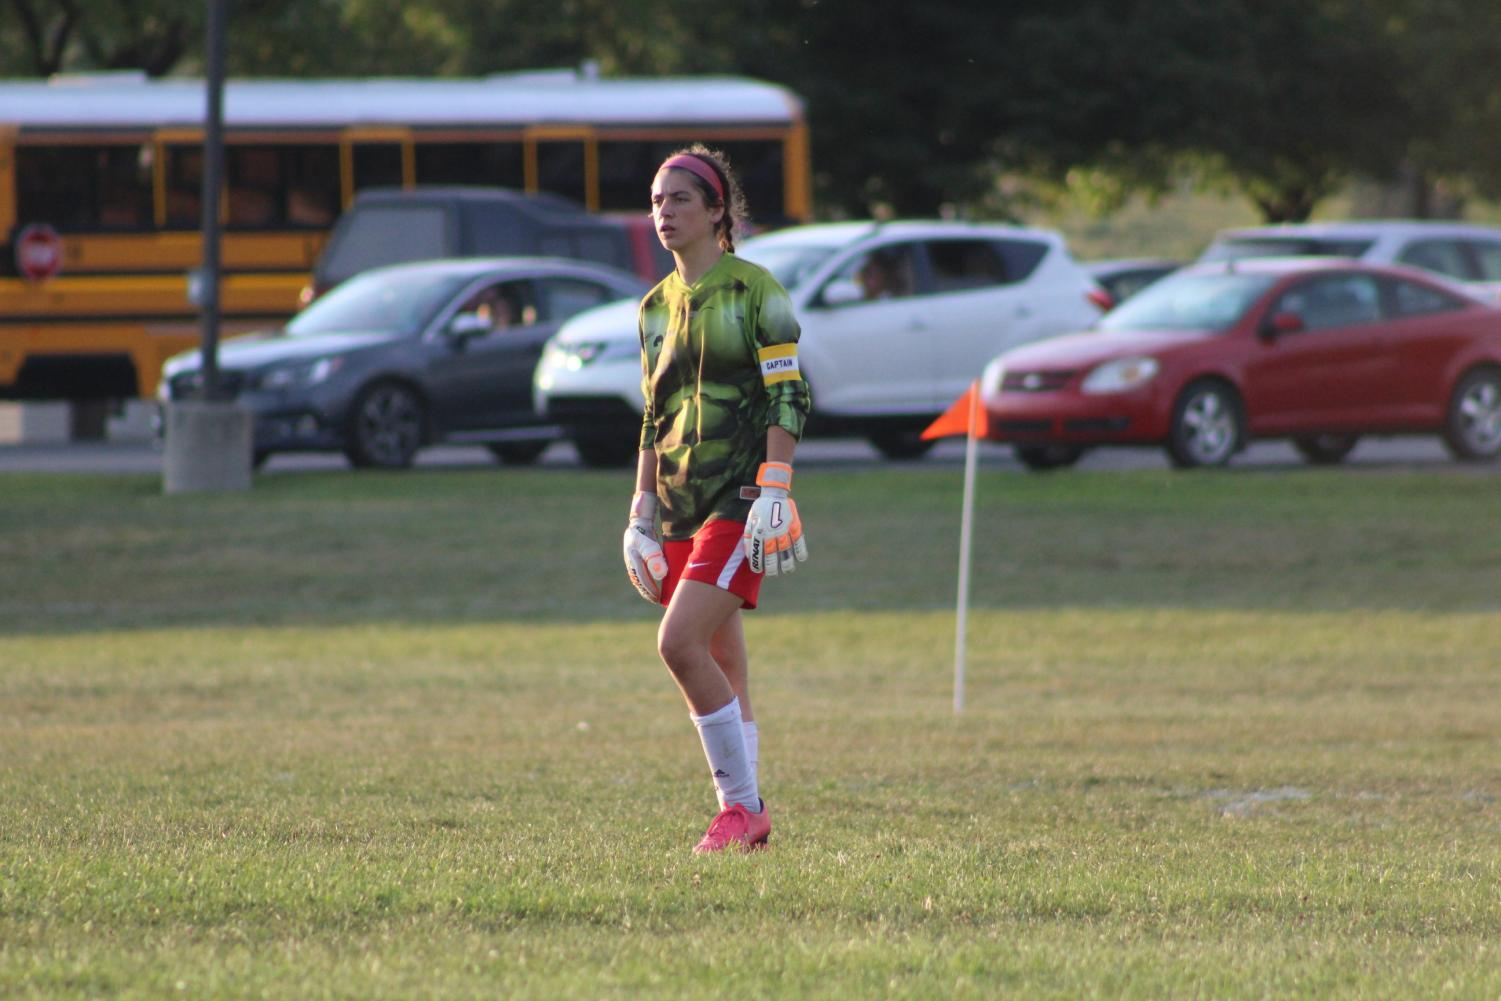 Sarah Betts watches as her defense kicks the ball to the other side of the field.